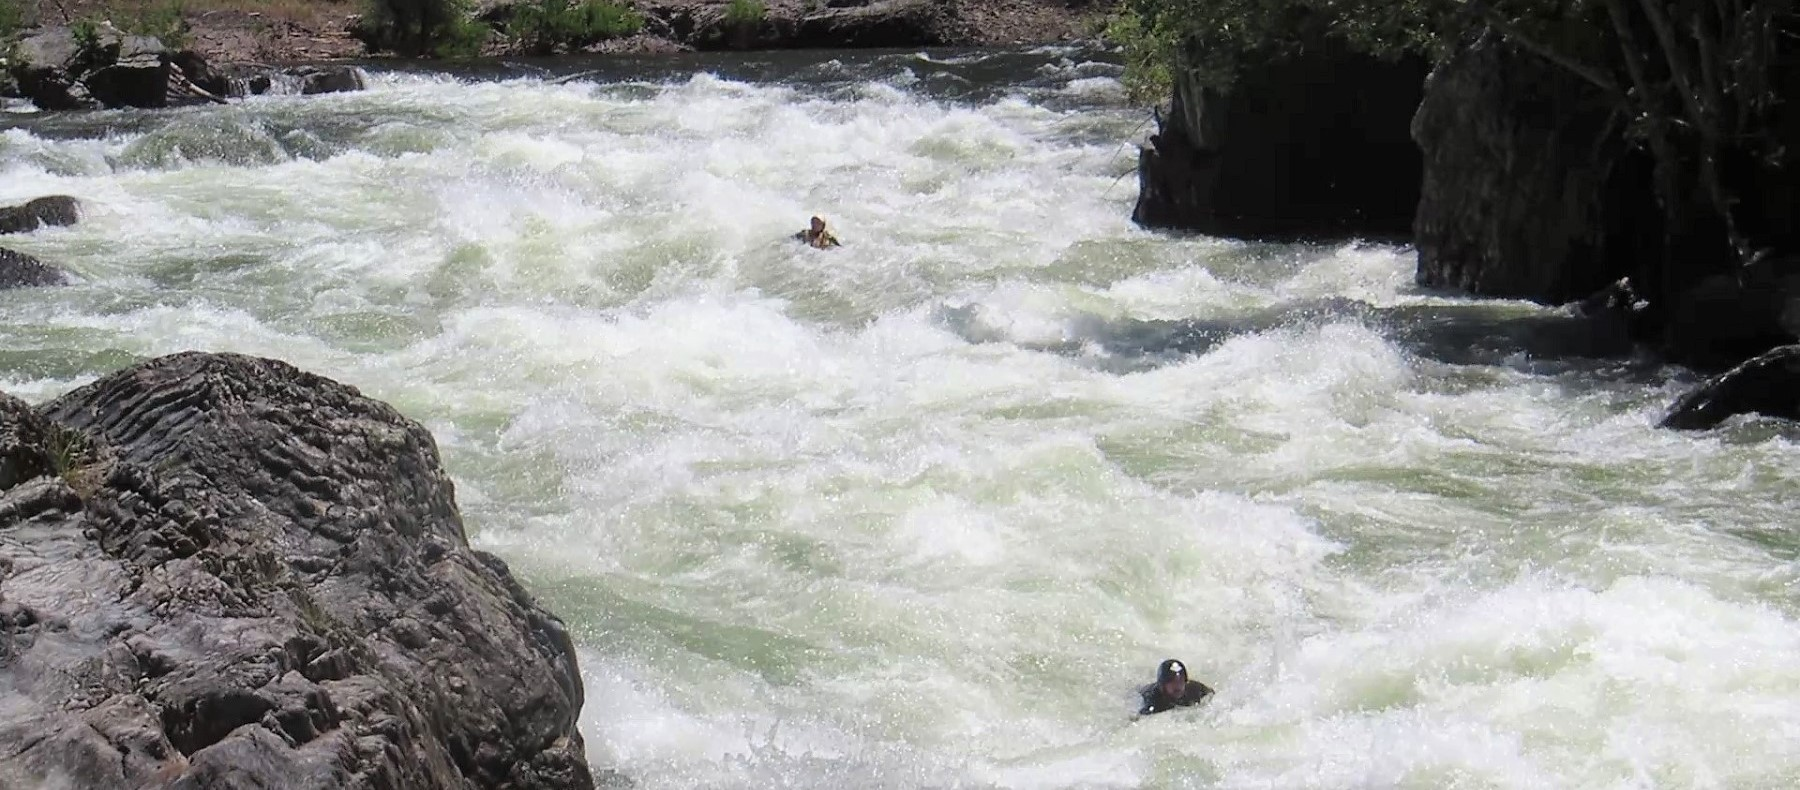 Best Practices for Swimming Whitewater Rapids